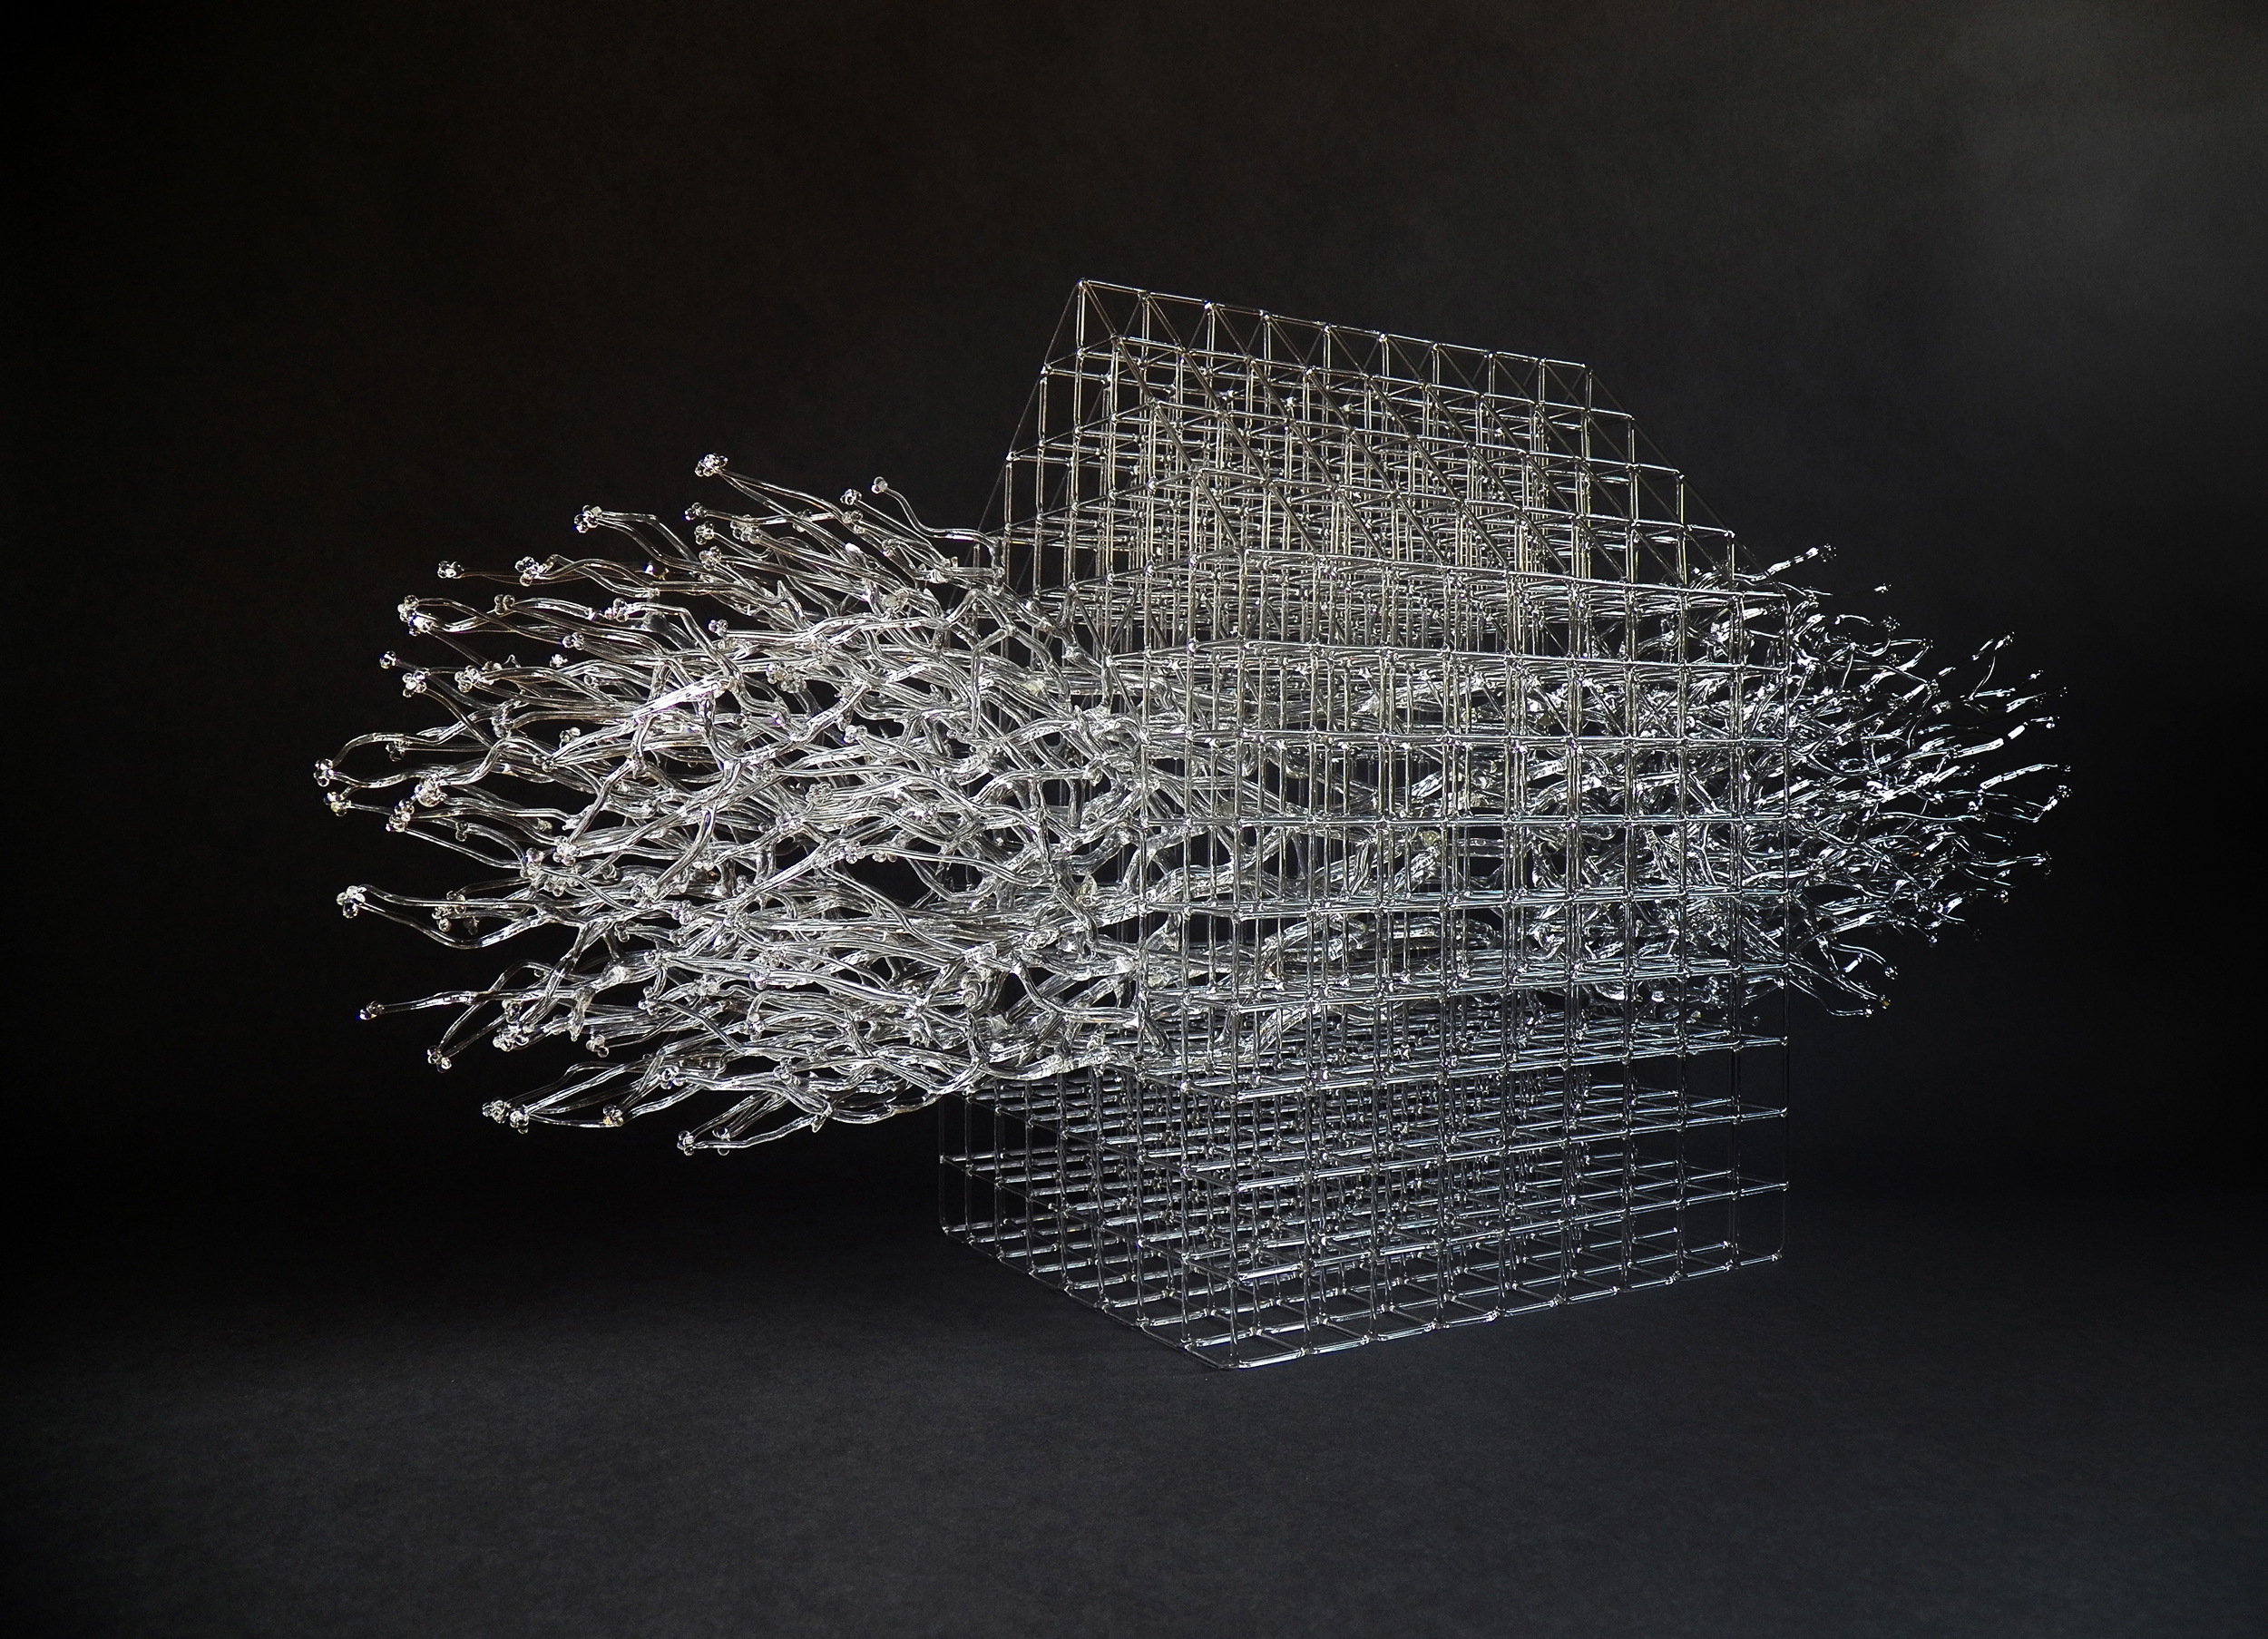 Eunsuh Choi, Housed Barrier IV. Flameworked, borosilicate glass. H 30, W 13, D 8 in. courtesy: pittsburgh glass center